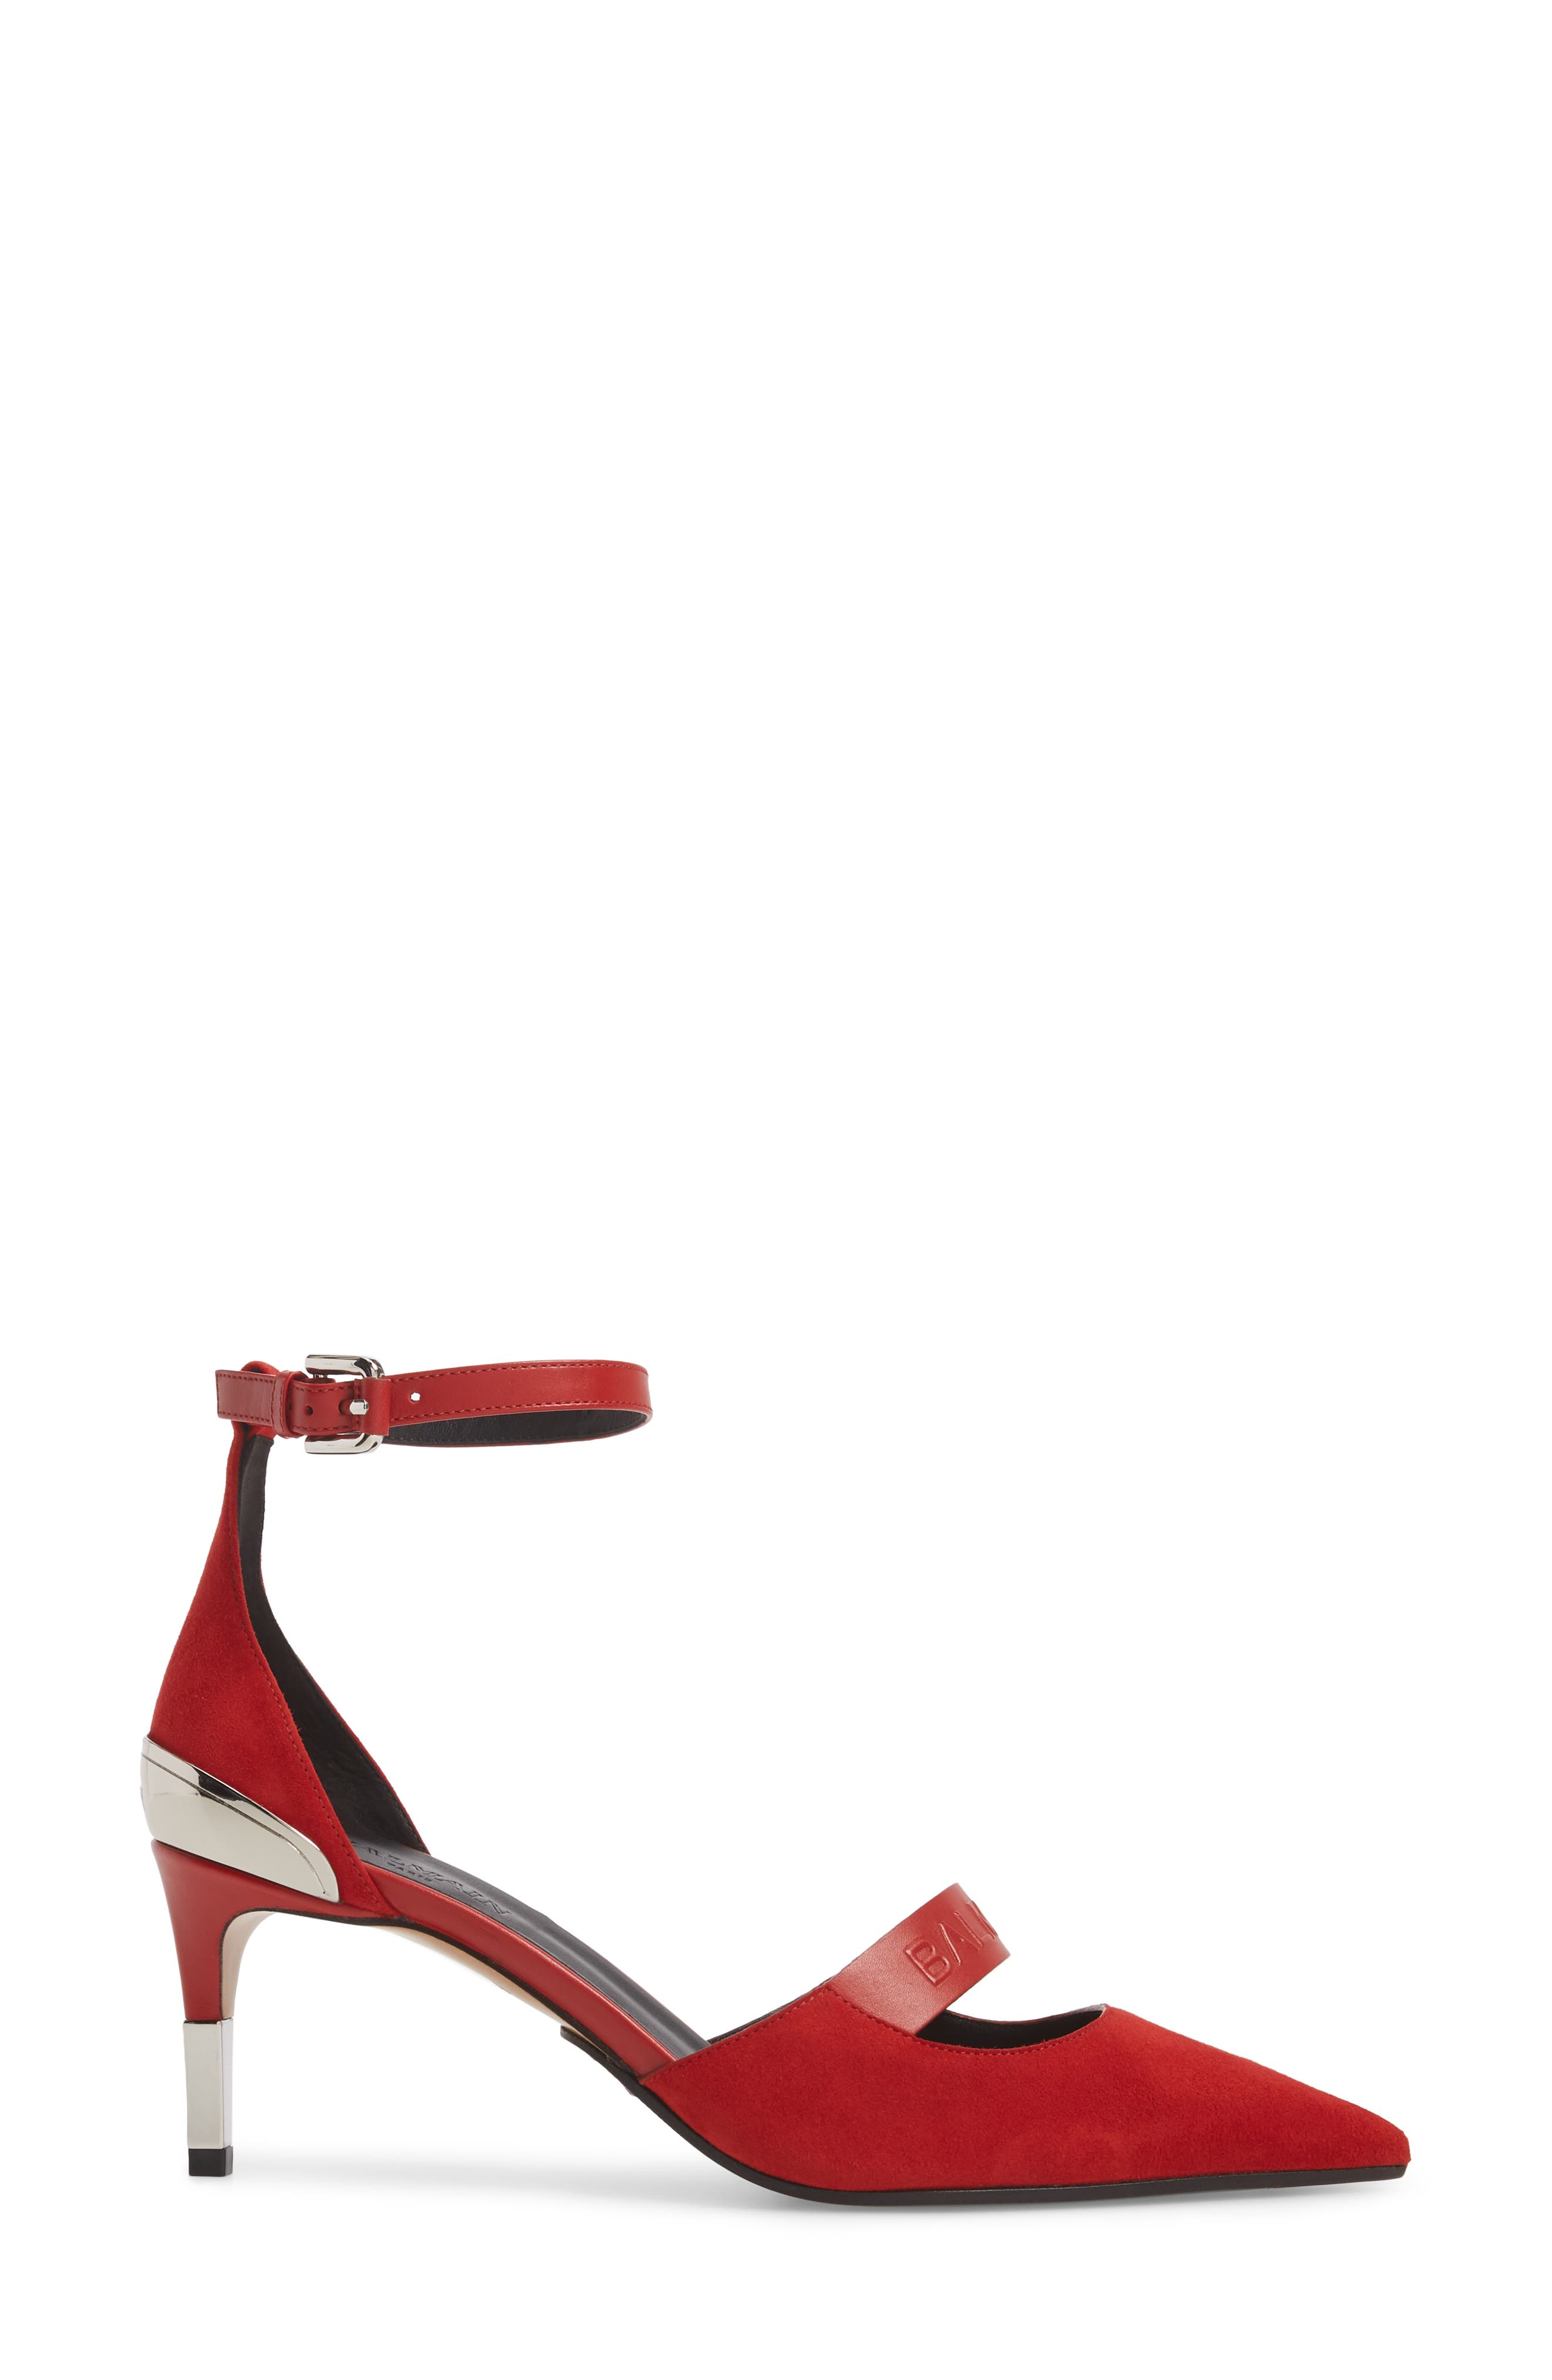 Chance Ankle Strap Pointy Toe Pump,                             Alternate thumbnail 3, color,                             Red